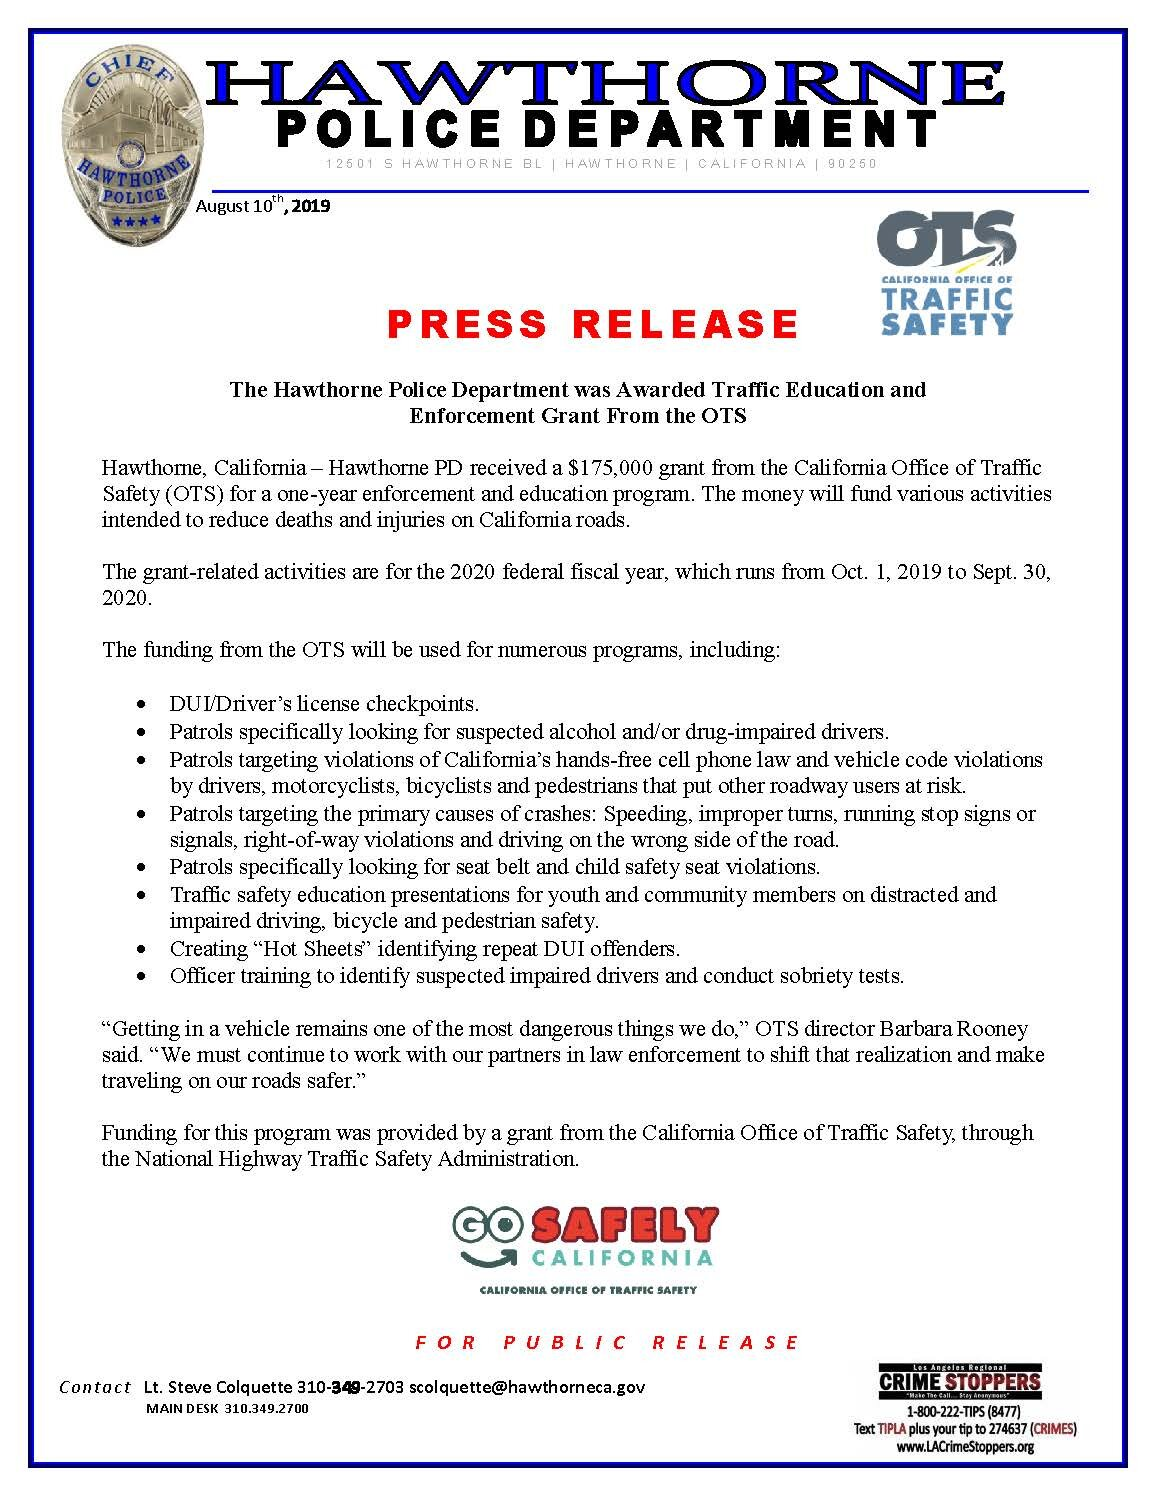 Hawthorne Police Department Awarded Traffic Education and Enforcement Grant from the OTS